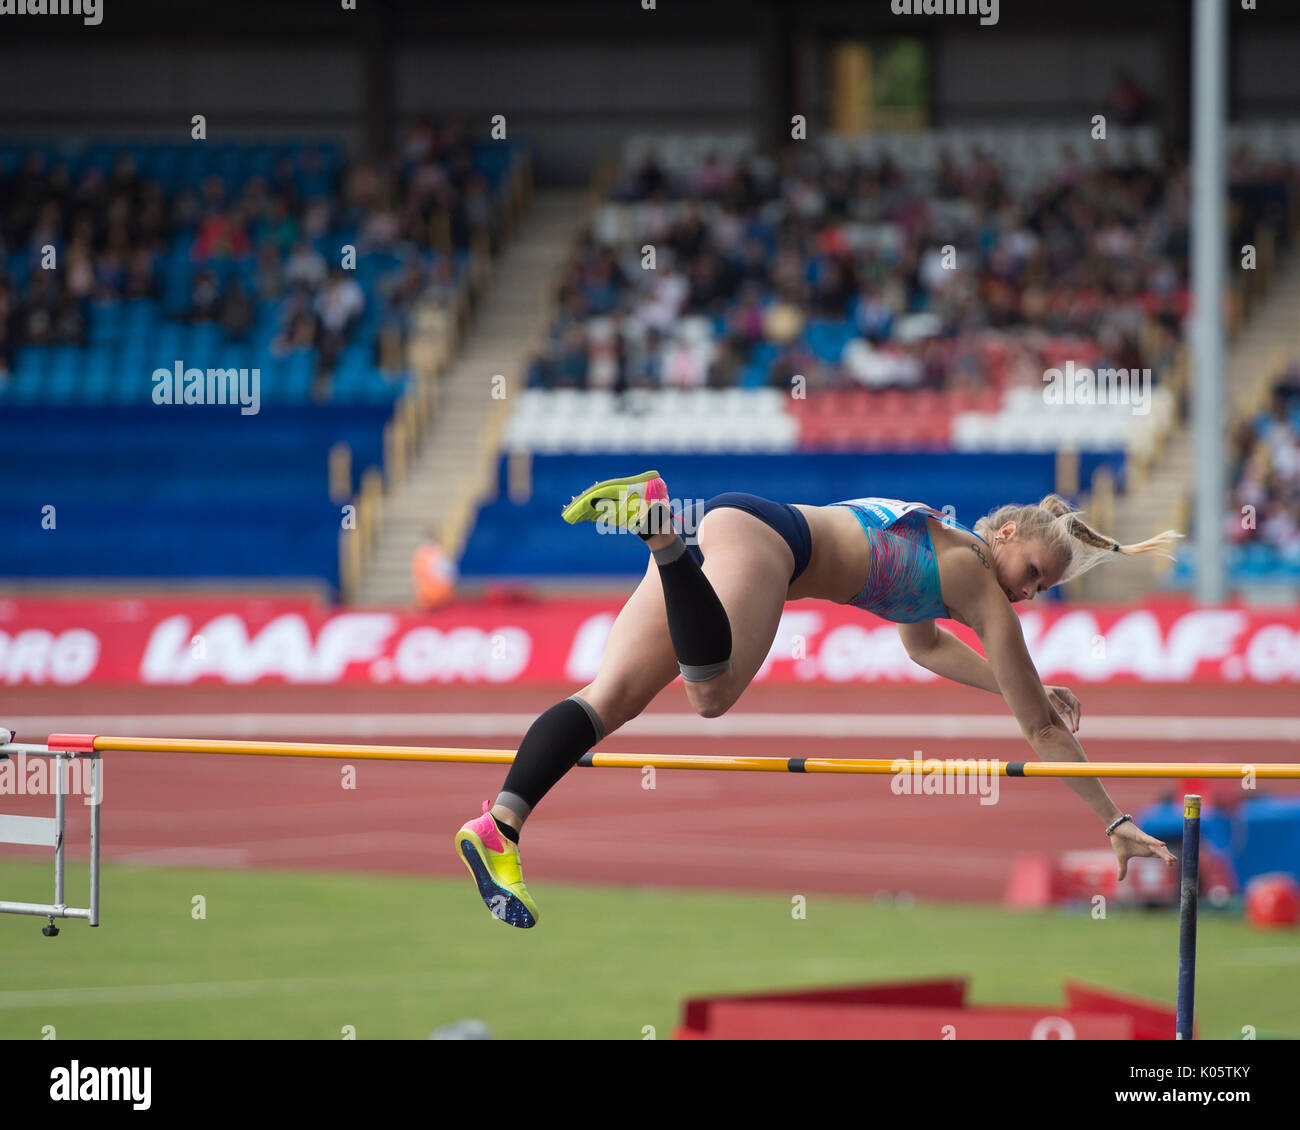 Birmingham England,20th August 2017 IAAF Diamond League meeting Michaela Meijer competes in the pole vault - Stock Image